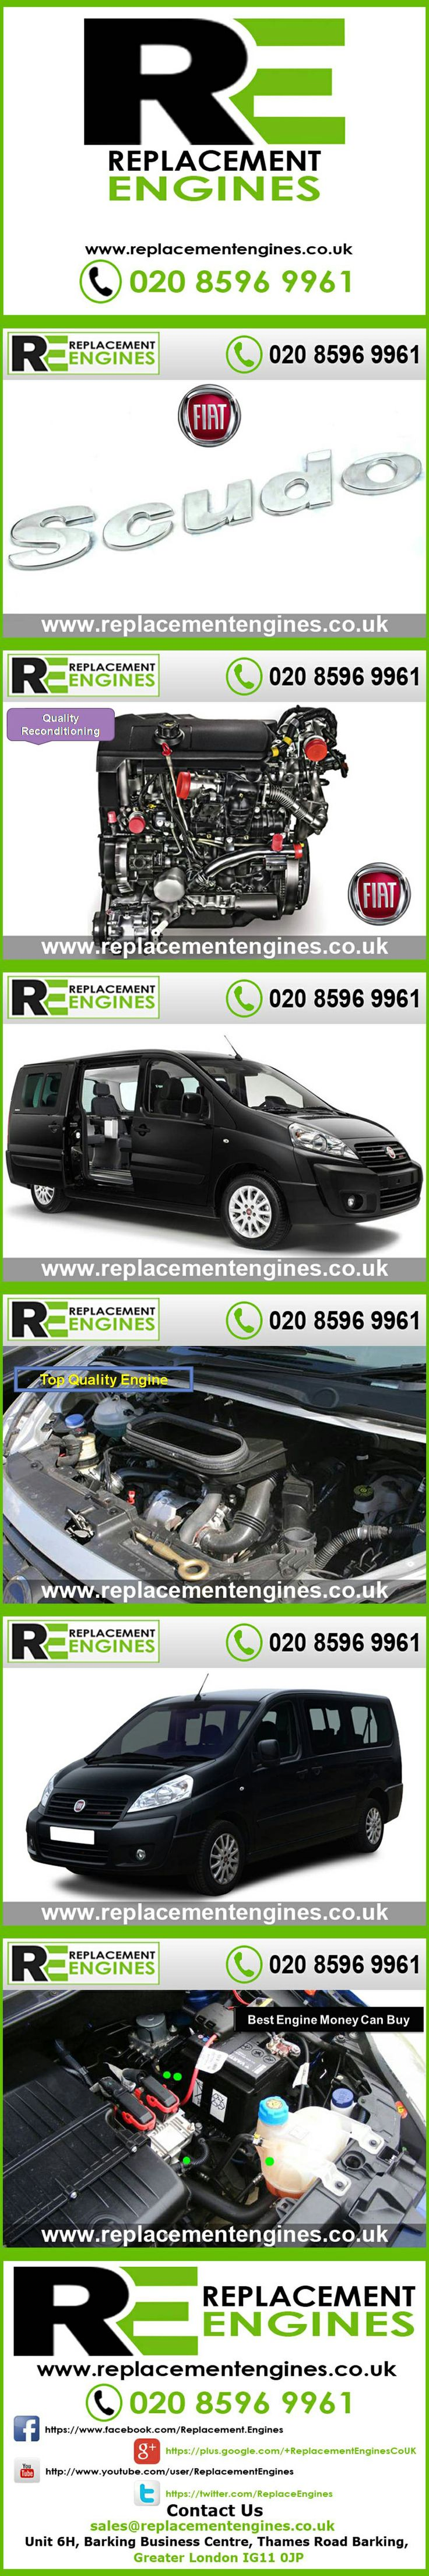 Fiat Scudo Engines for sale at the cheapest prices, we have low mileage used & reconditioned engines in stock now, ready to be delivered to anywhere in the UK or overseas, visit Replacement Engines website here  http://www.replacementengines.co.uk/car-md.asp?part=all-fiat-scudovan-engine&mo_id=31758